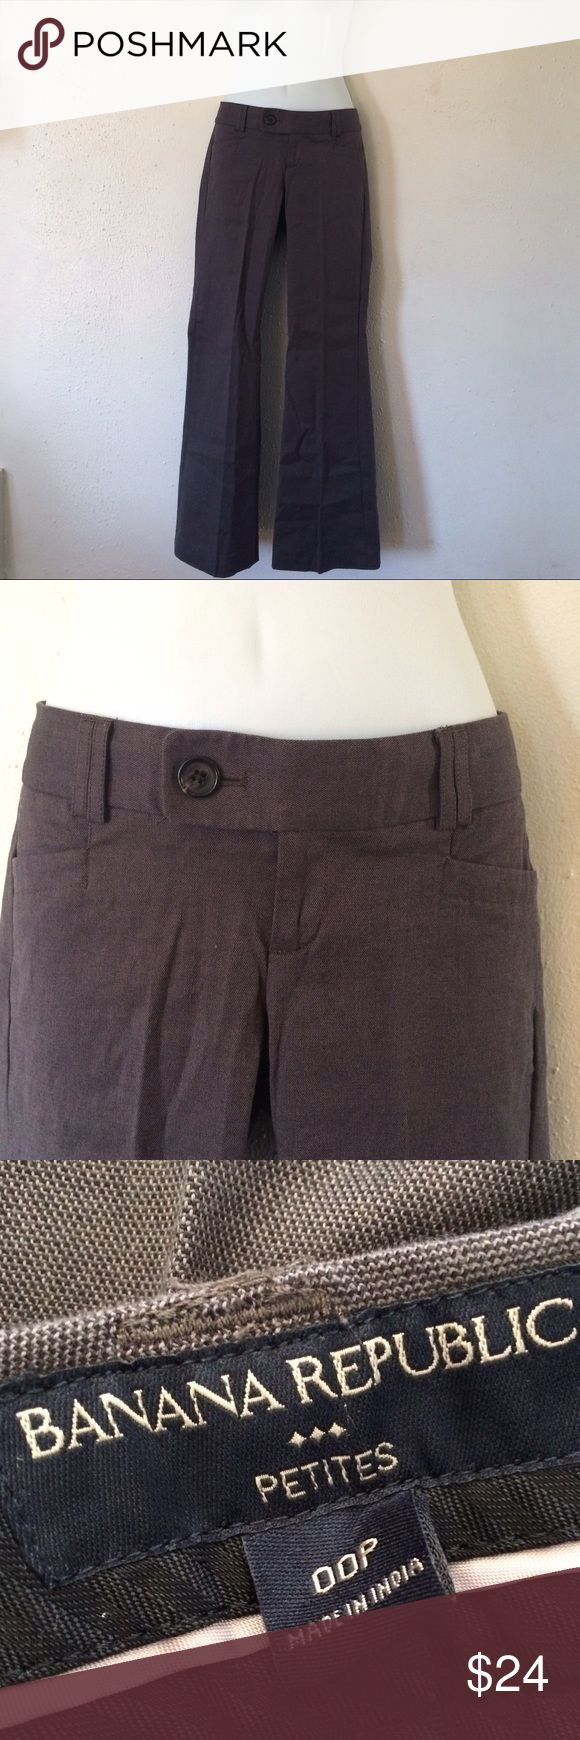 BANANA REPUBLIC casual dress pant Petite Banana Republic dress pant with some stretch. Gray in color, very chic!   🌸🎀 I offer a bundle discount! Feel free to shop around my closet! Enjoy! 🎀🌸 Banana Republic Pants Trousers